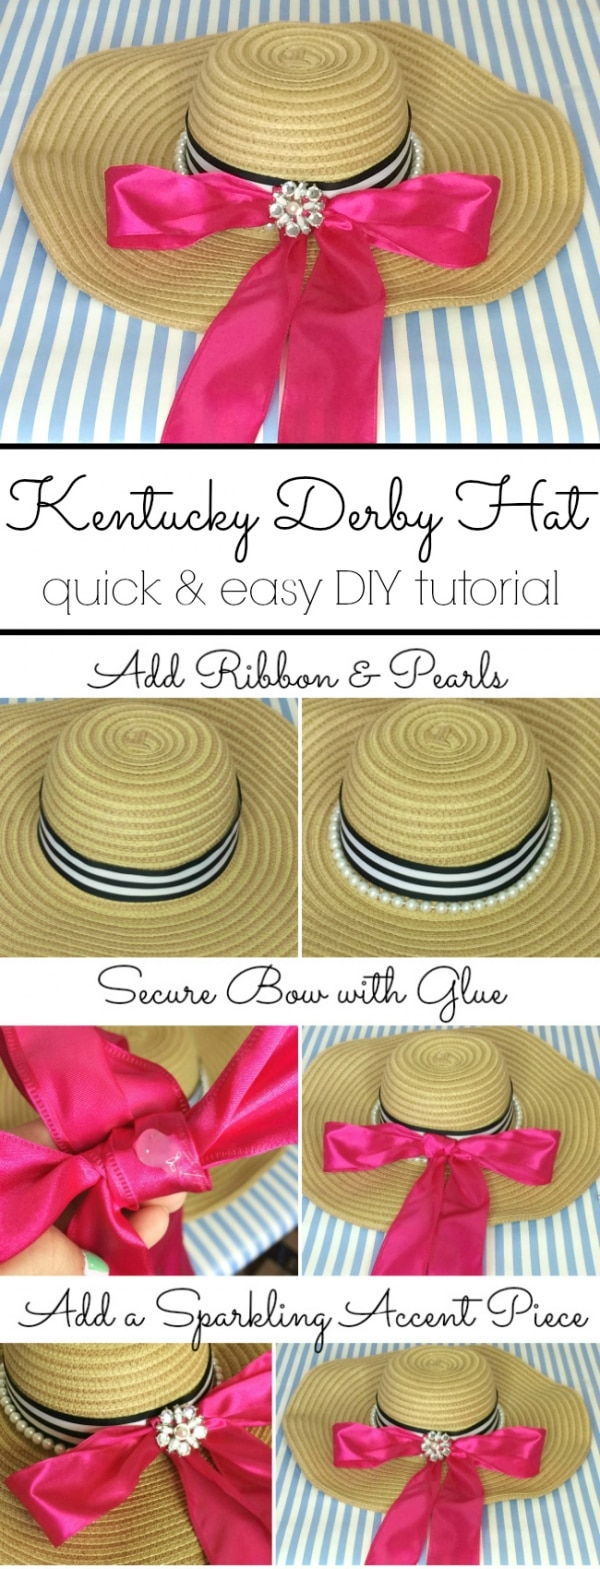 diy-glam-kentucky-derby-hat-easy-tutorial